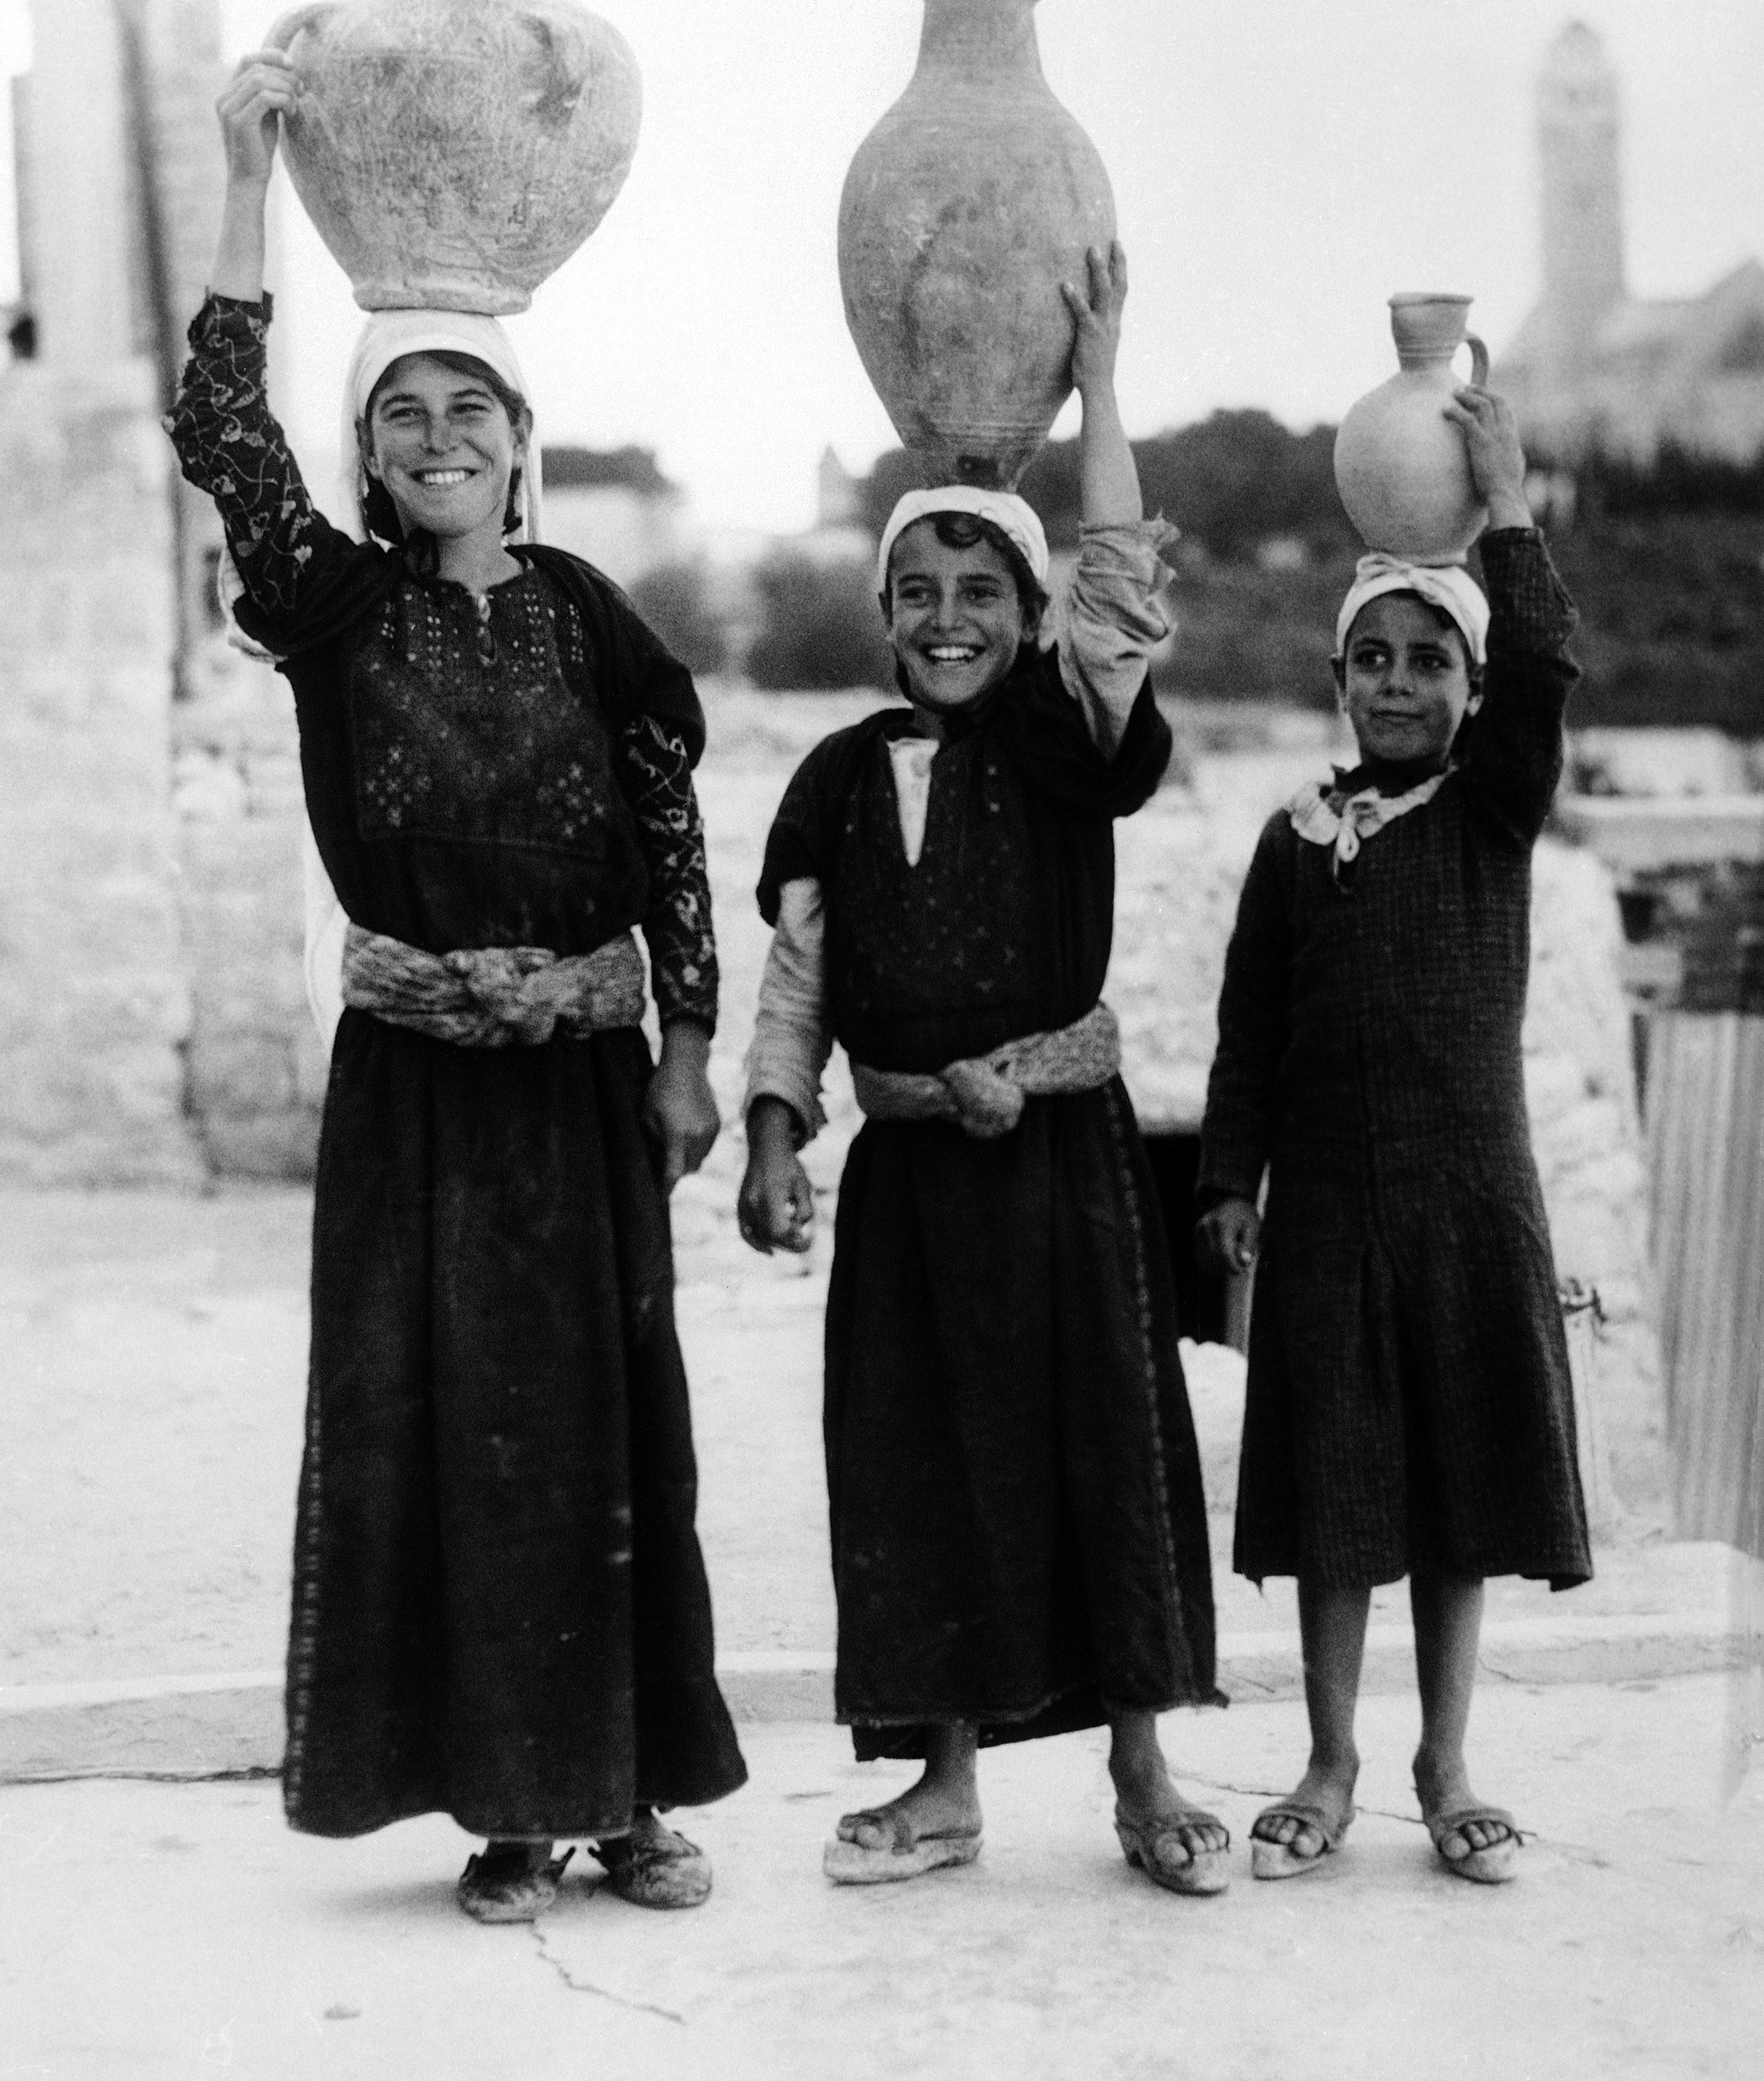 Httpwww Overlordsofchaos Comhtmlorigin Of The Word Jew Html: Photos Of Palestine And Israel 1930-1949